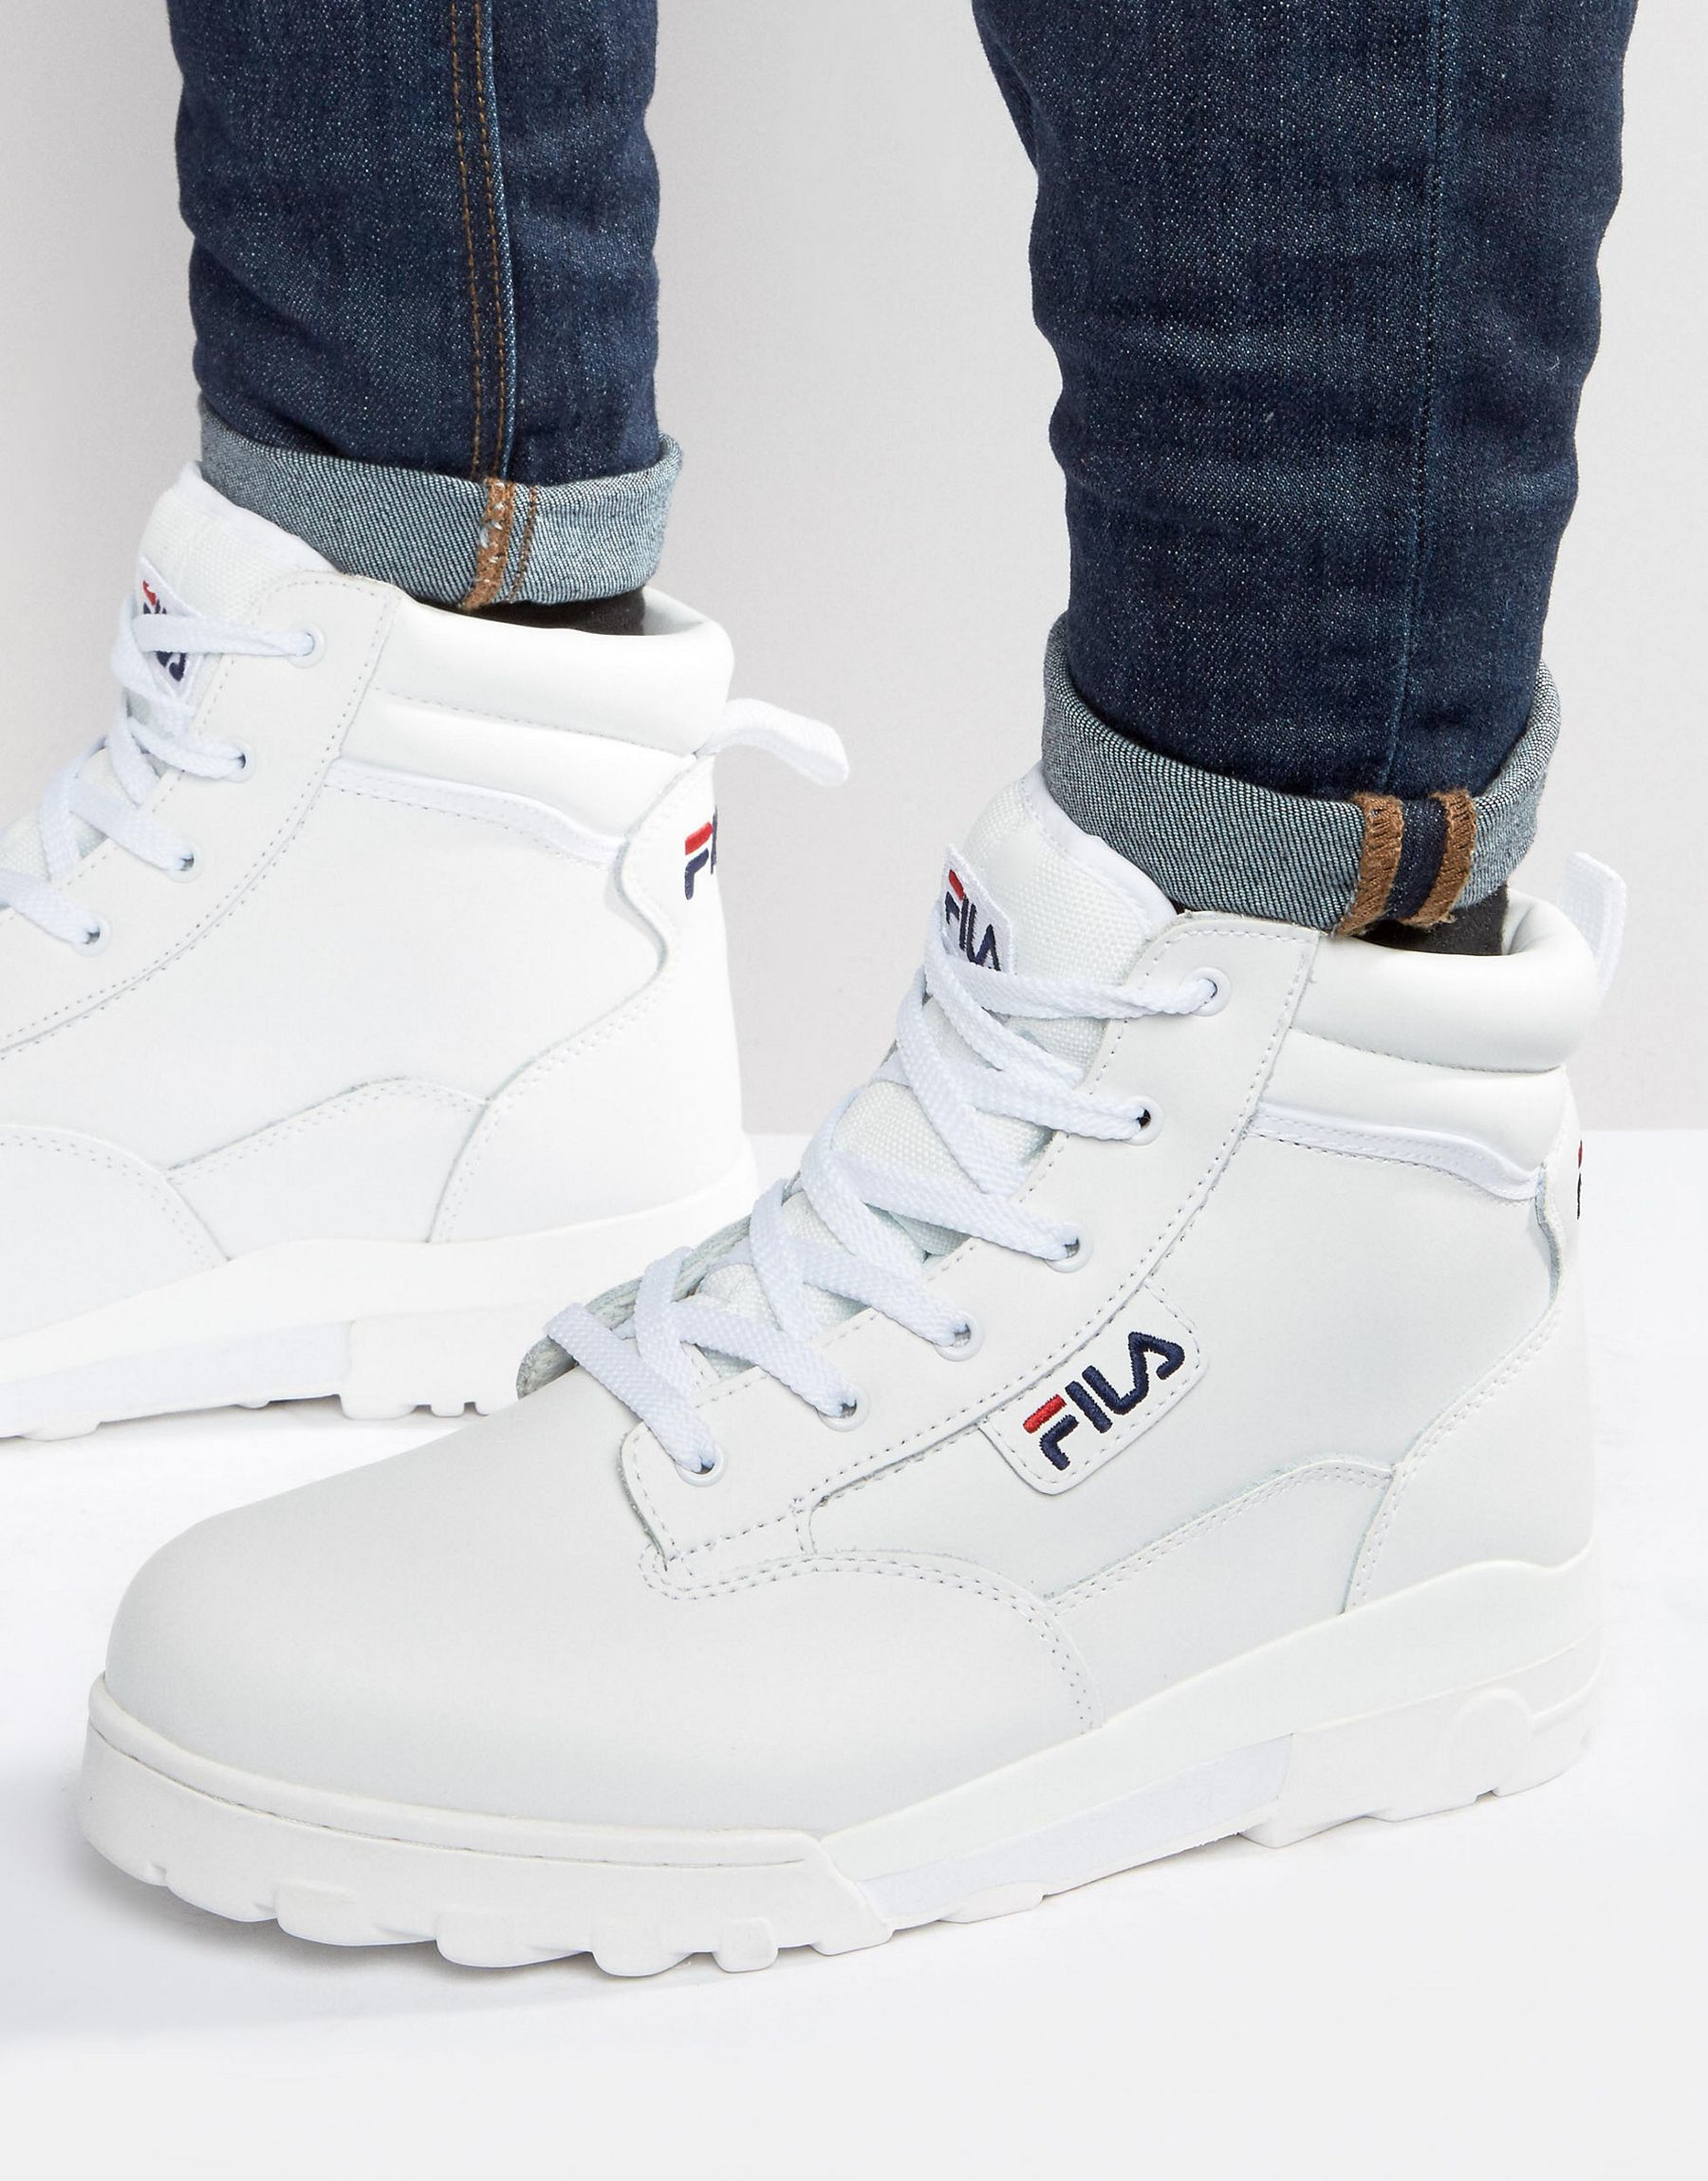 49f85158 Fila White Grunge Mid Laceup Boots for men